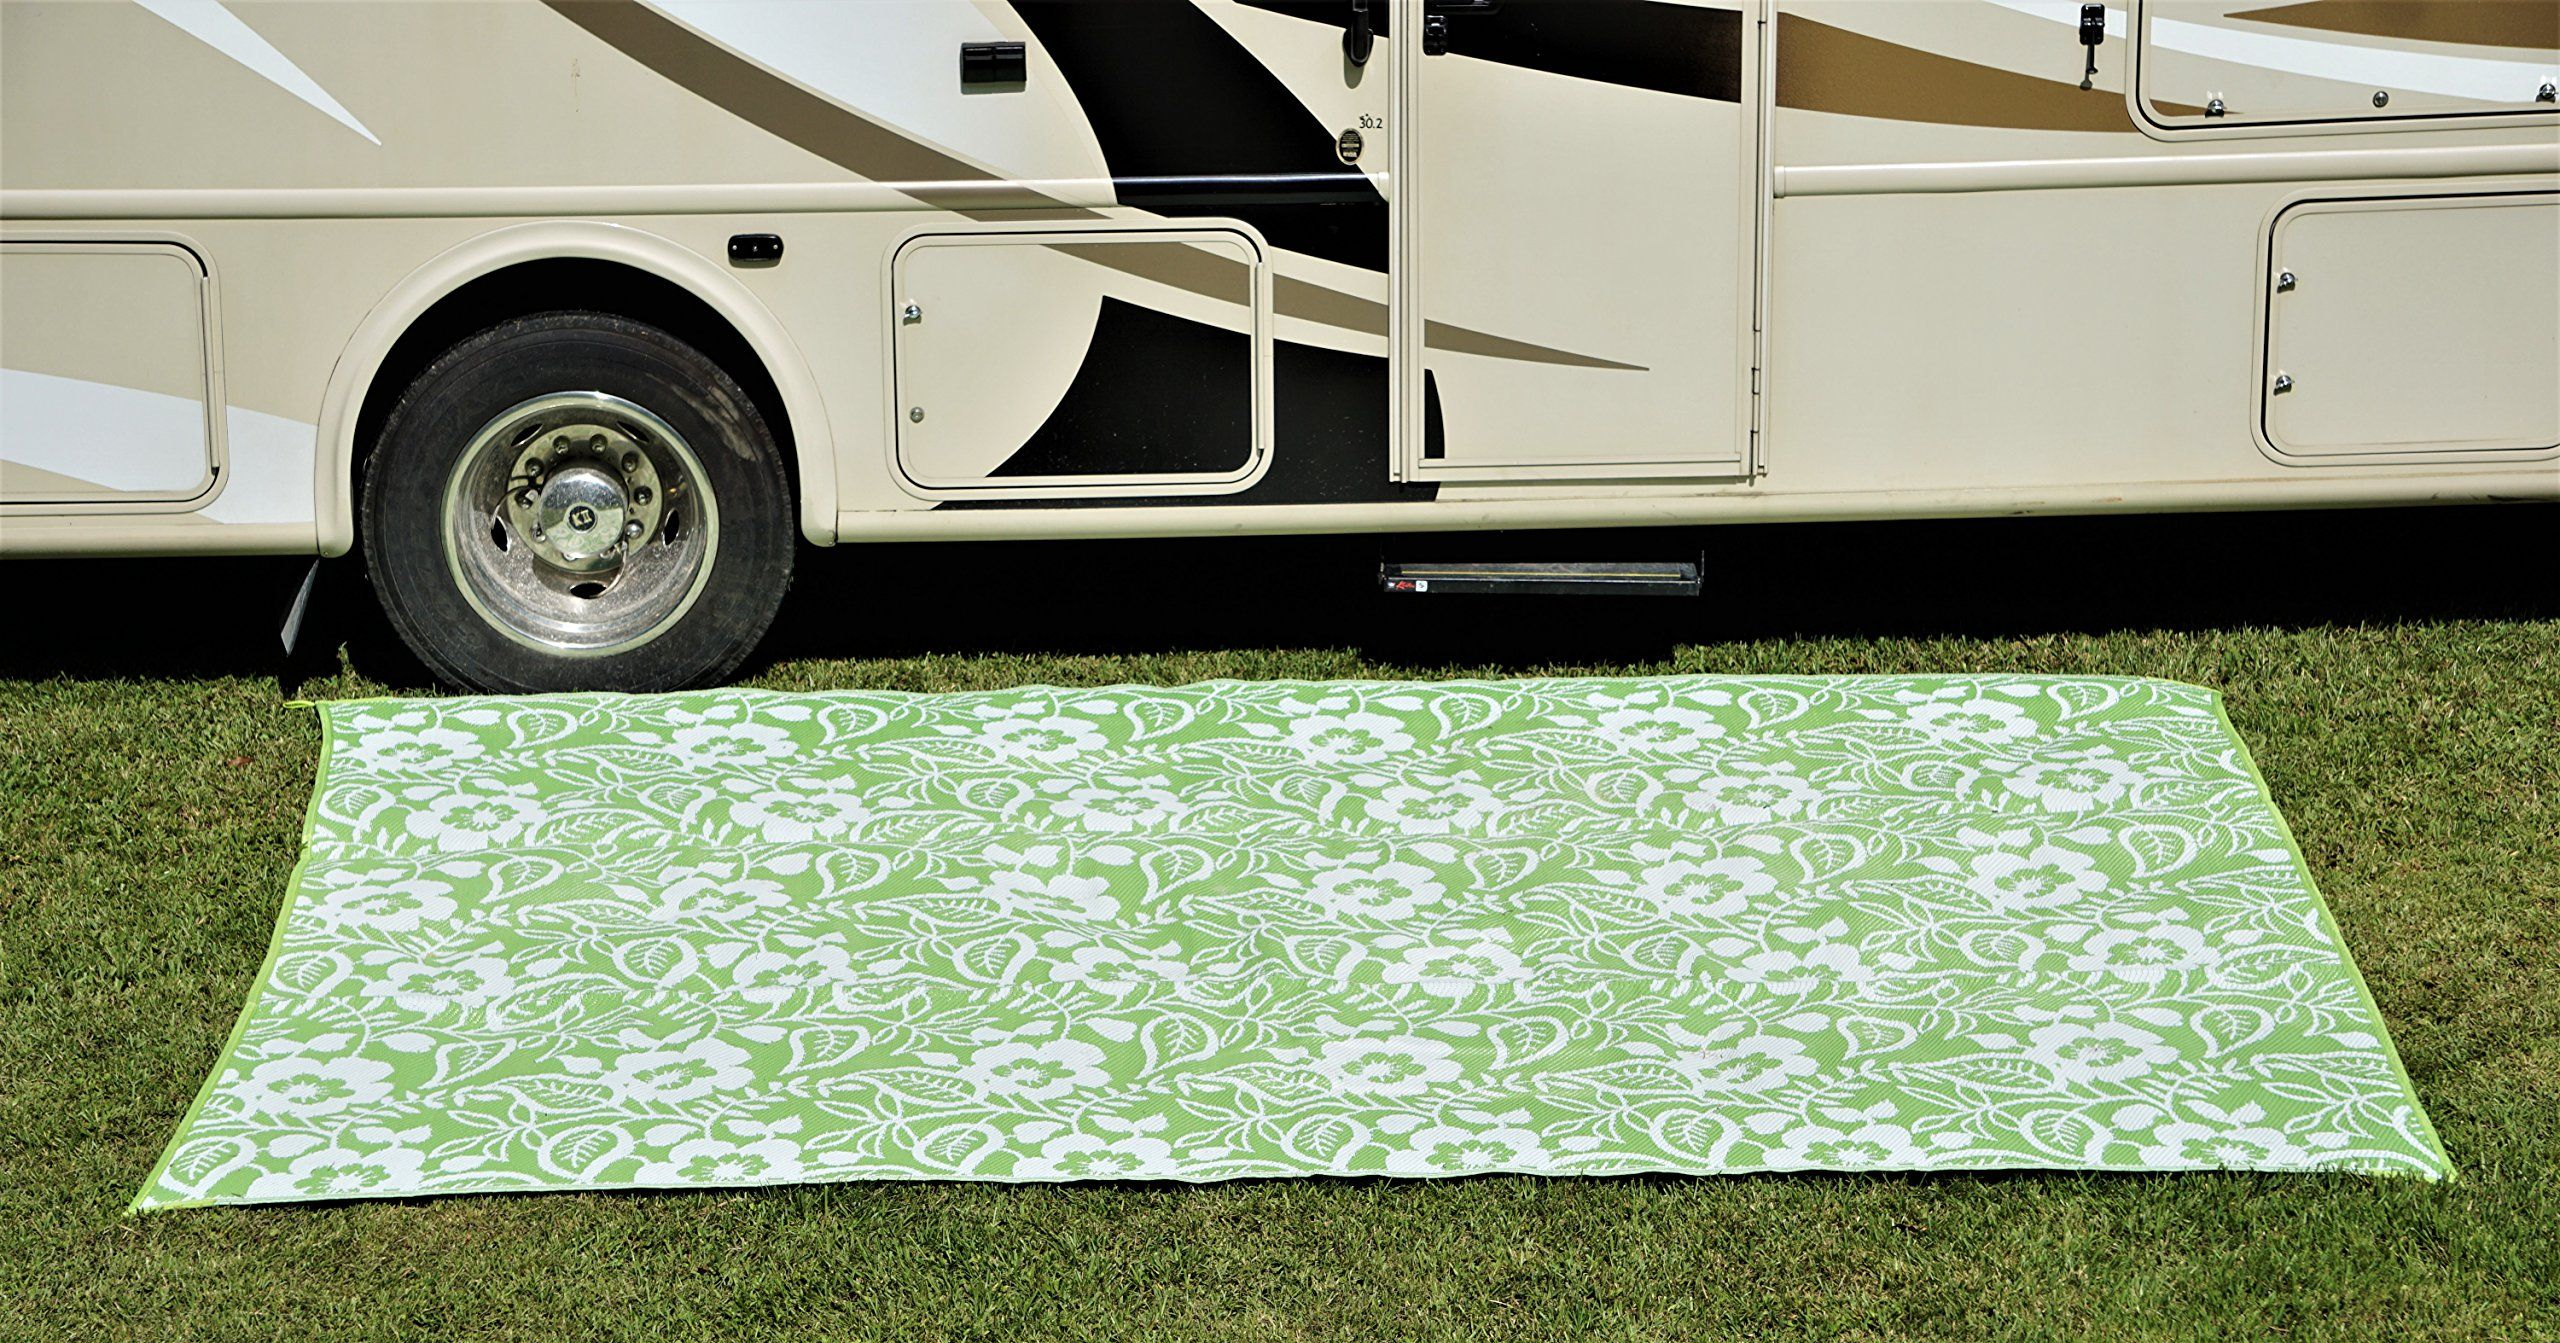 Rv Patio Mat Outdoor Rug For Patio 9x12 Camping Rug Large Reversible Best For Camping Rv Patio Beach Home Deck See This Camping Rug Outdoor Mat Patio Mats